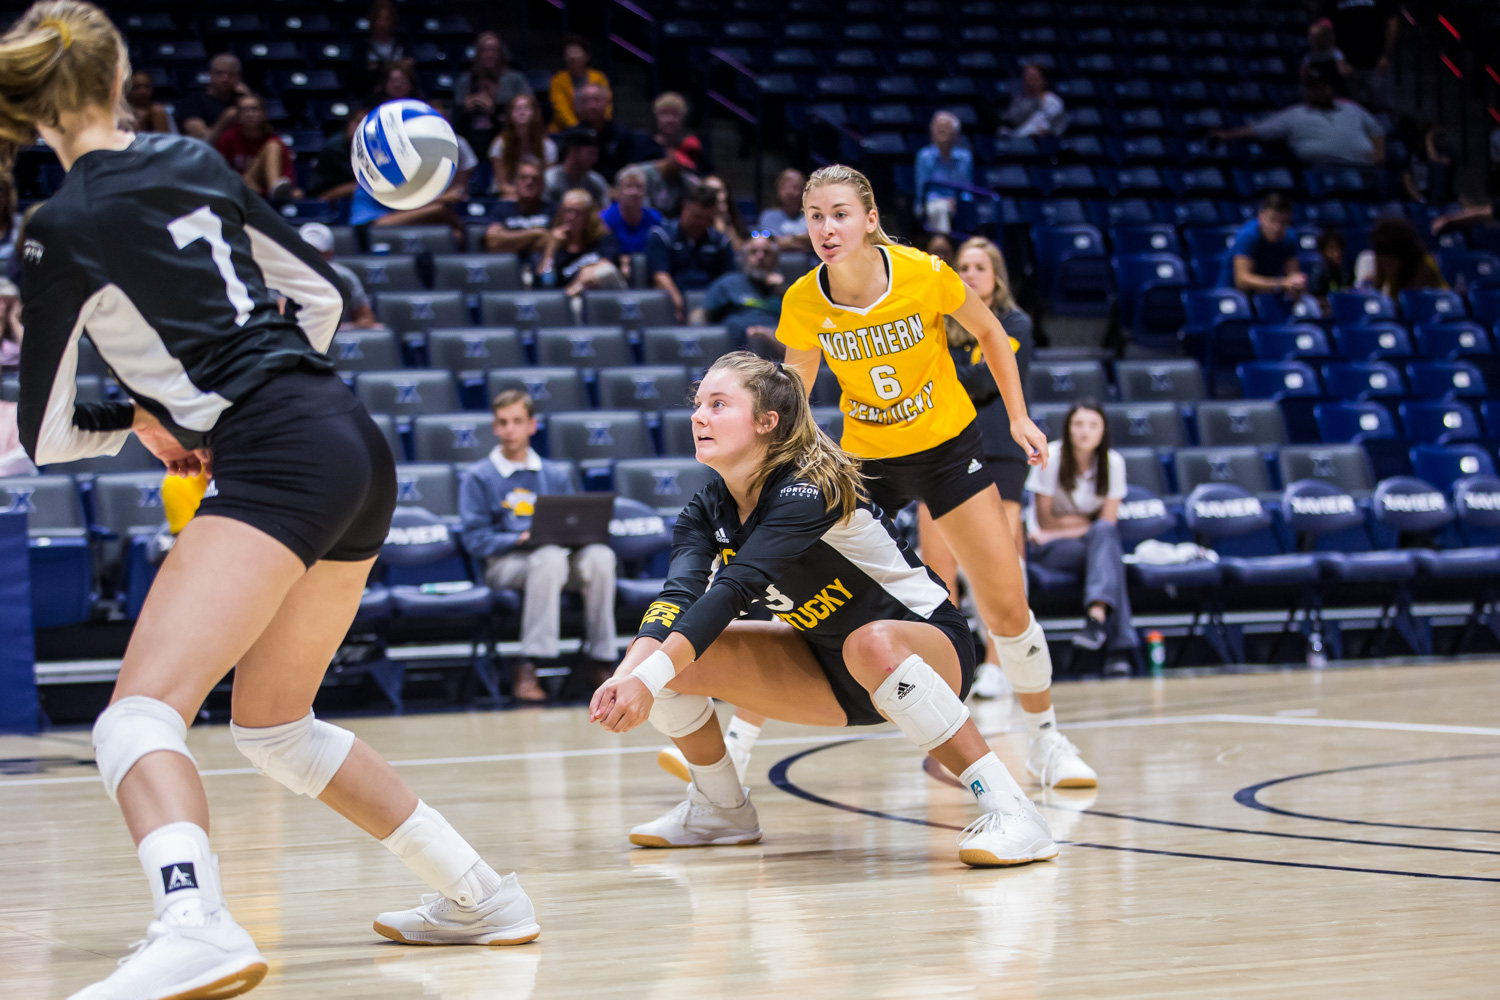 Anna+Brinkmann+%283%29+goes+down+for+a+hit+during+the+game+against+Xavier.+The+Norse+defeated+the+Musketeers+taking+3+of+4+sets.